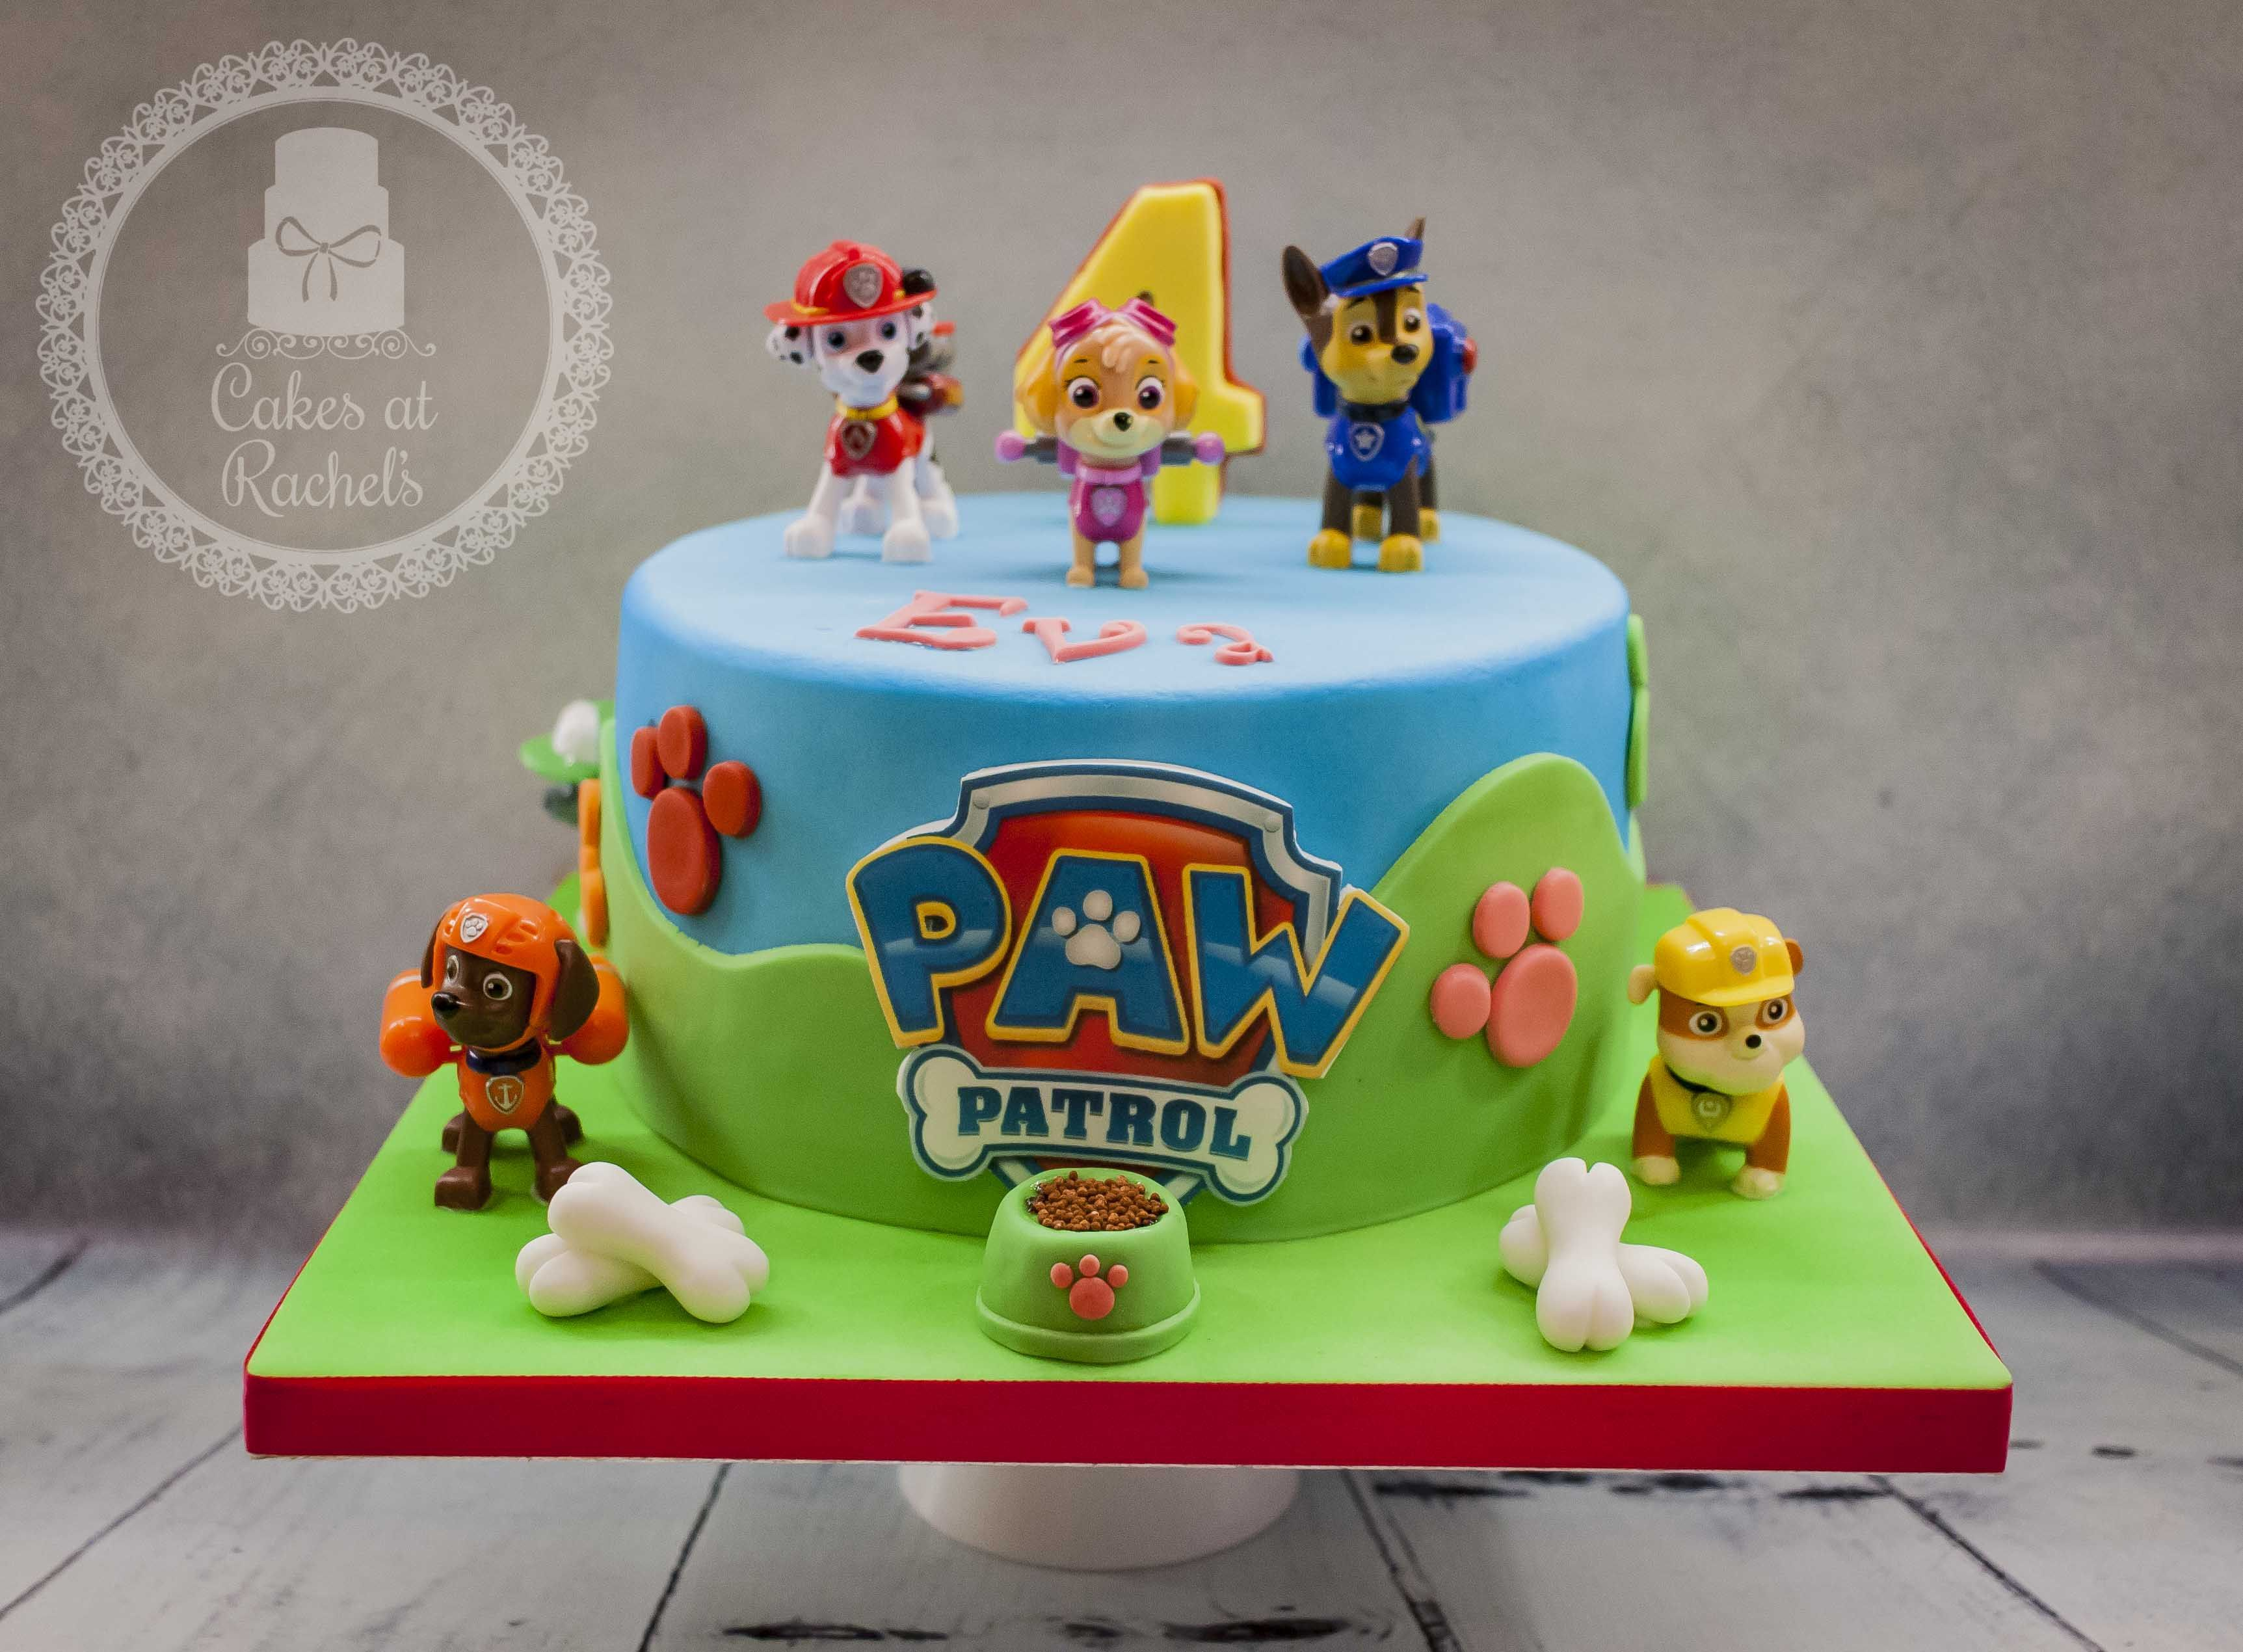 best 25 paw patrol cake ideas on pinterest paw patrol birthday 9 another all singing all dancing design but with handmade figurines